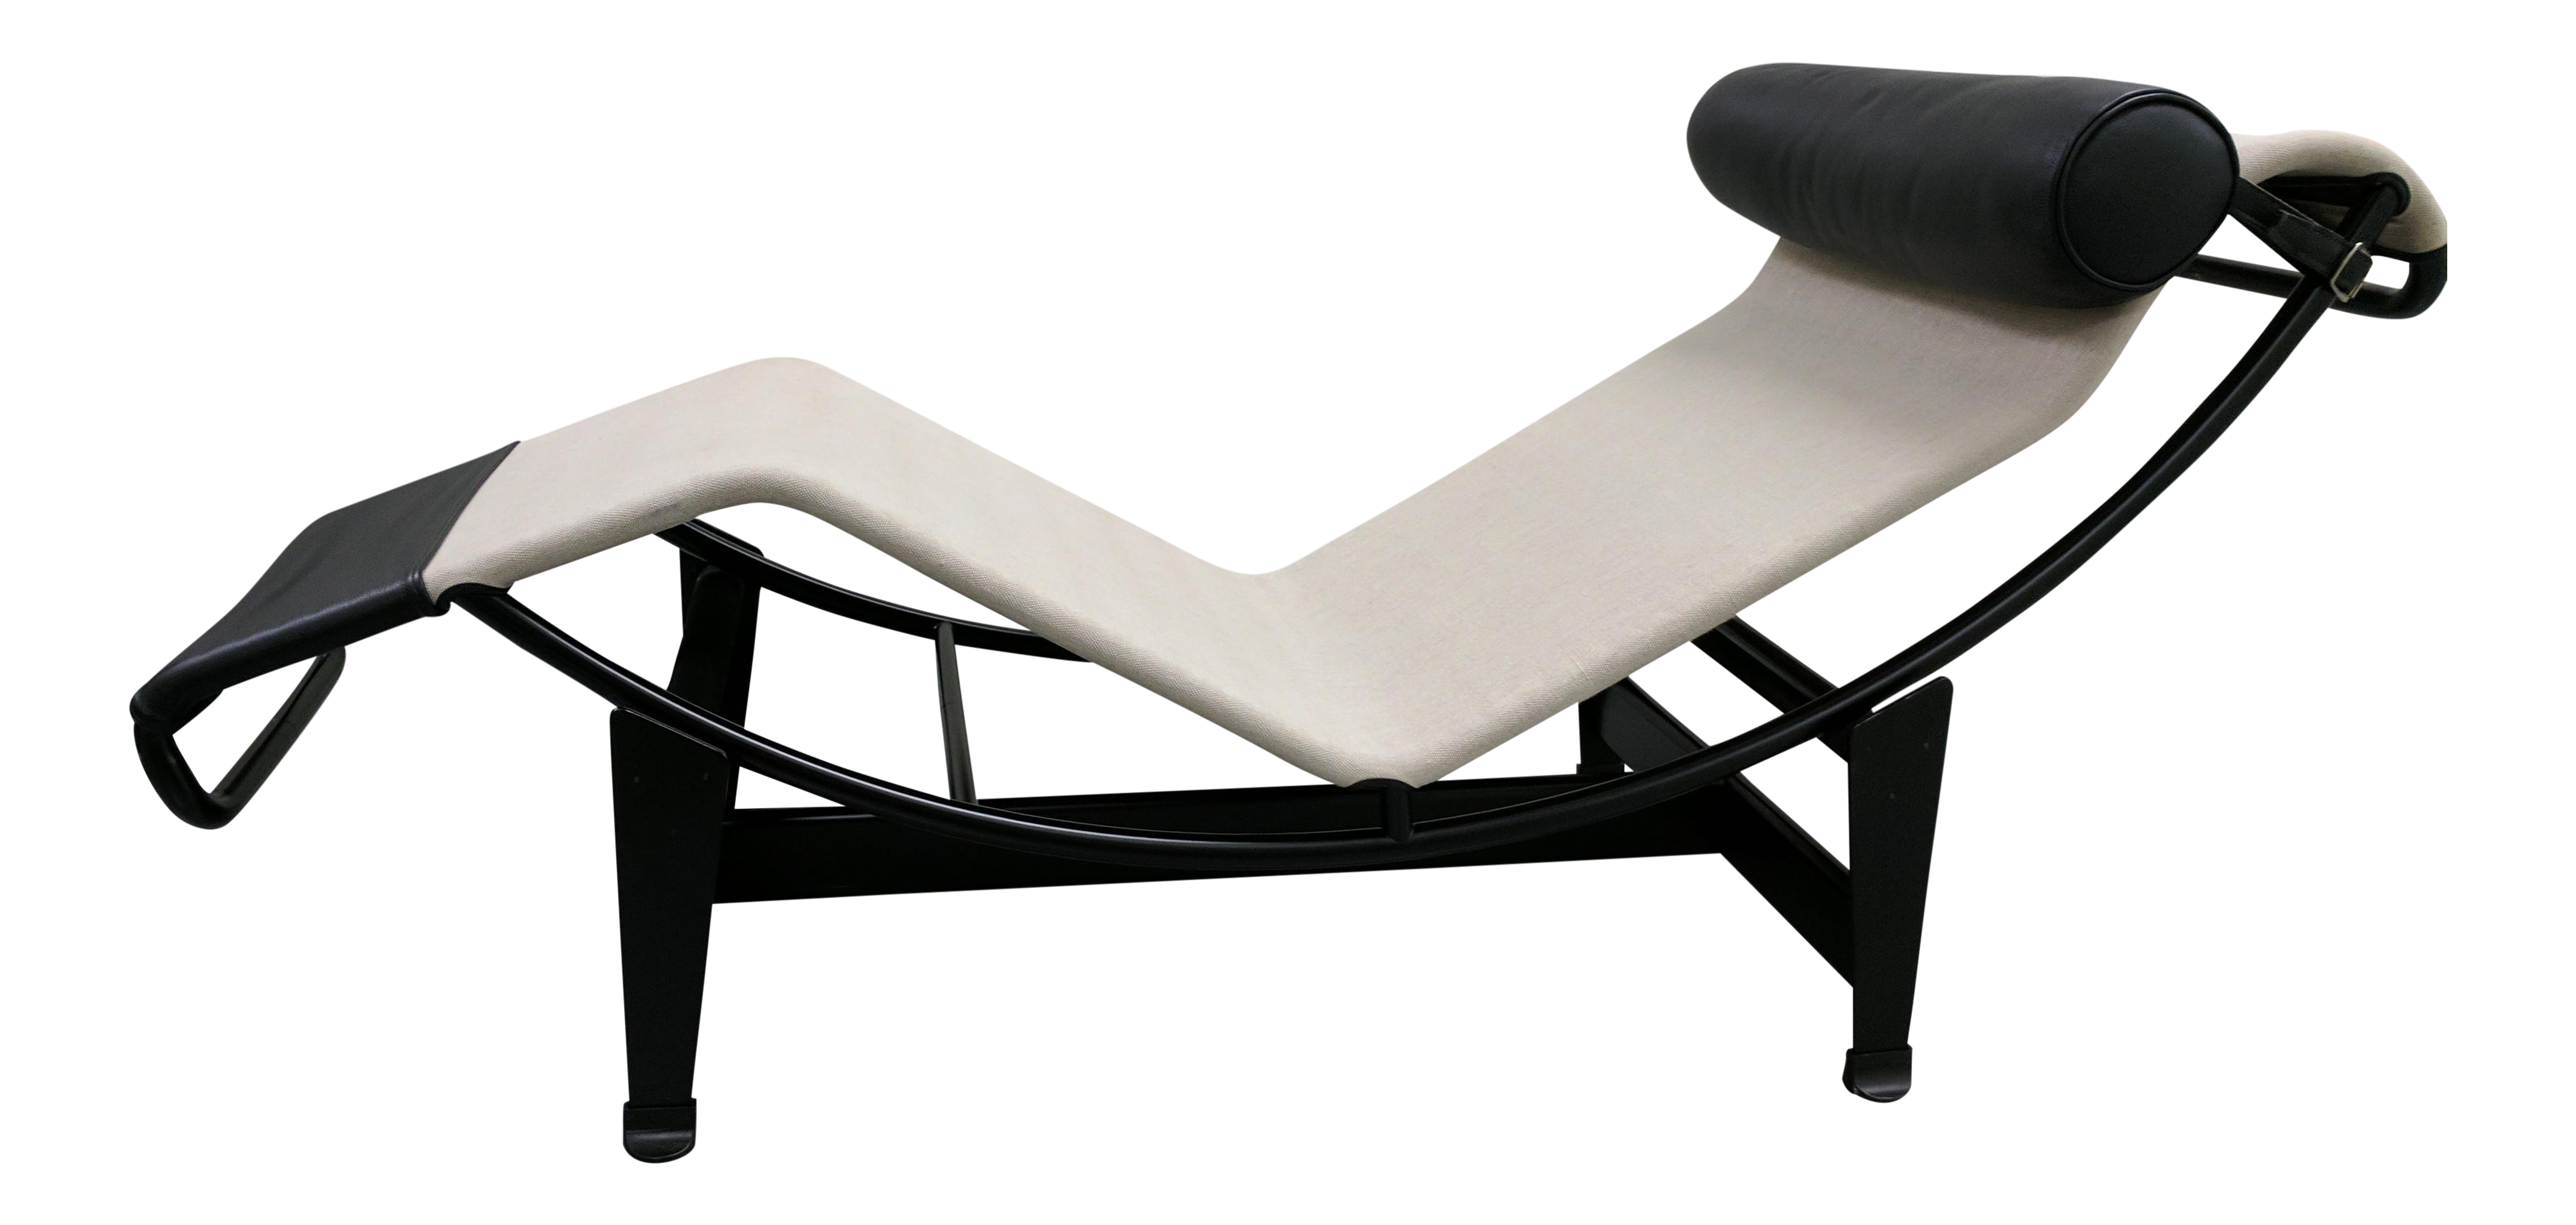 Le corbusier designed lc4 chaise longue chairish for Chaise longue le corbusier vache